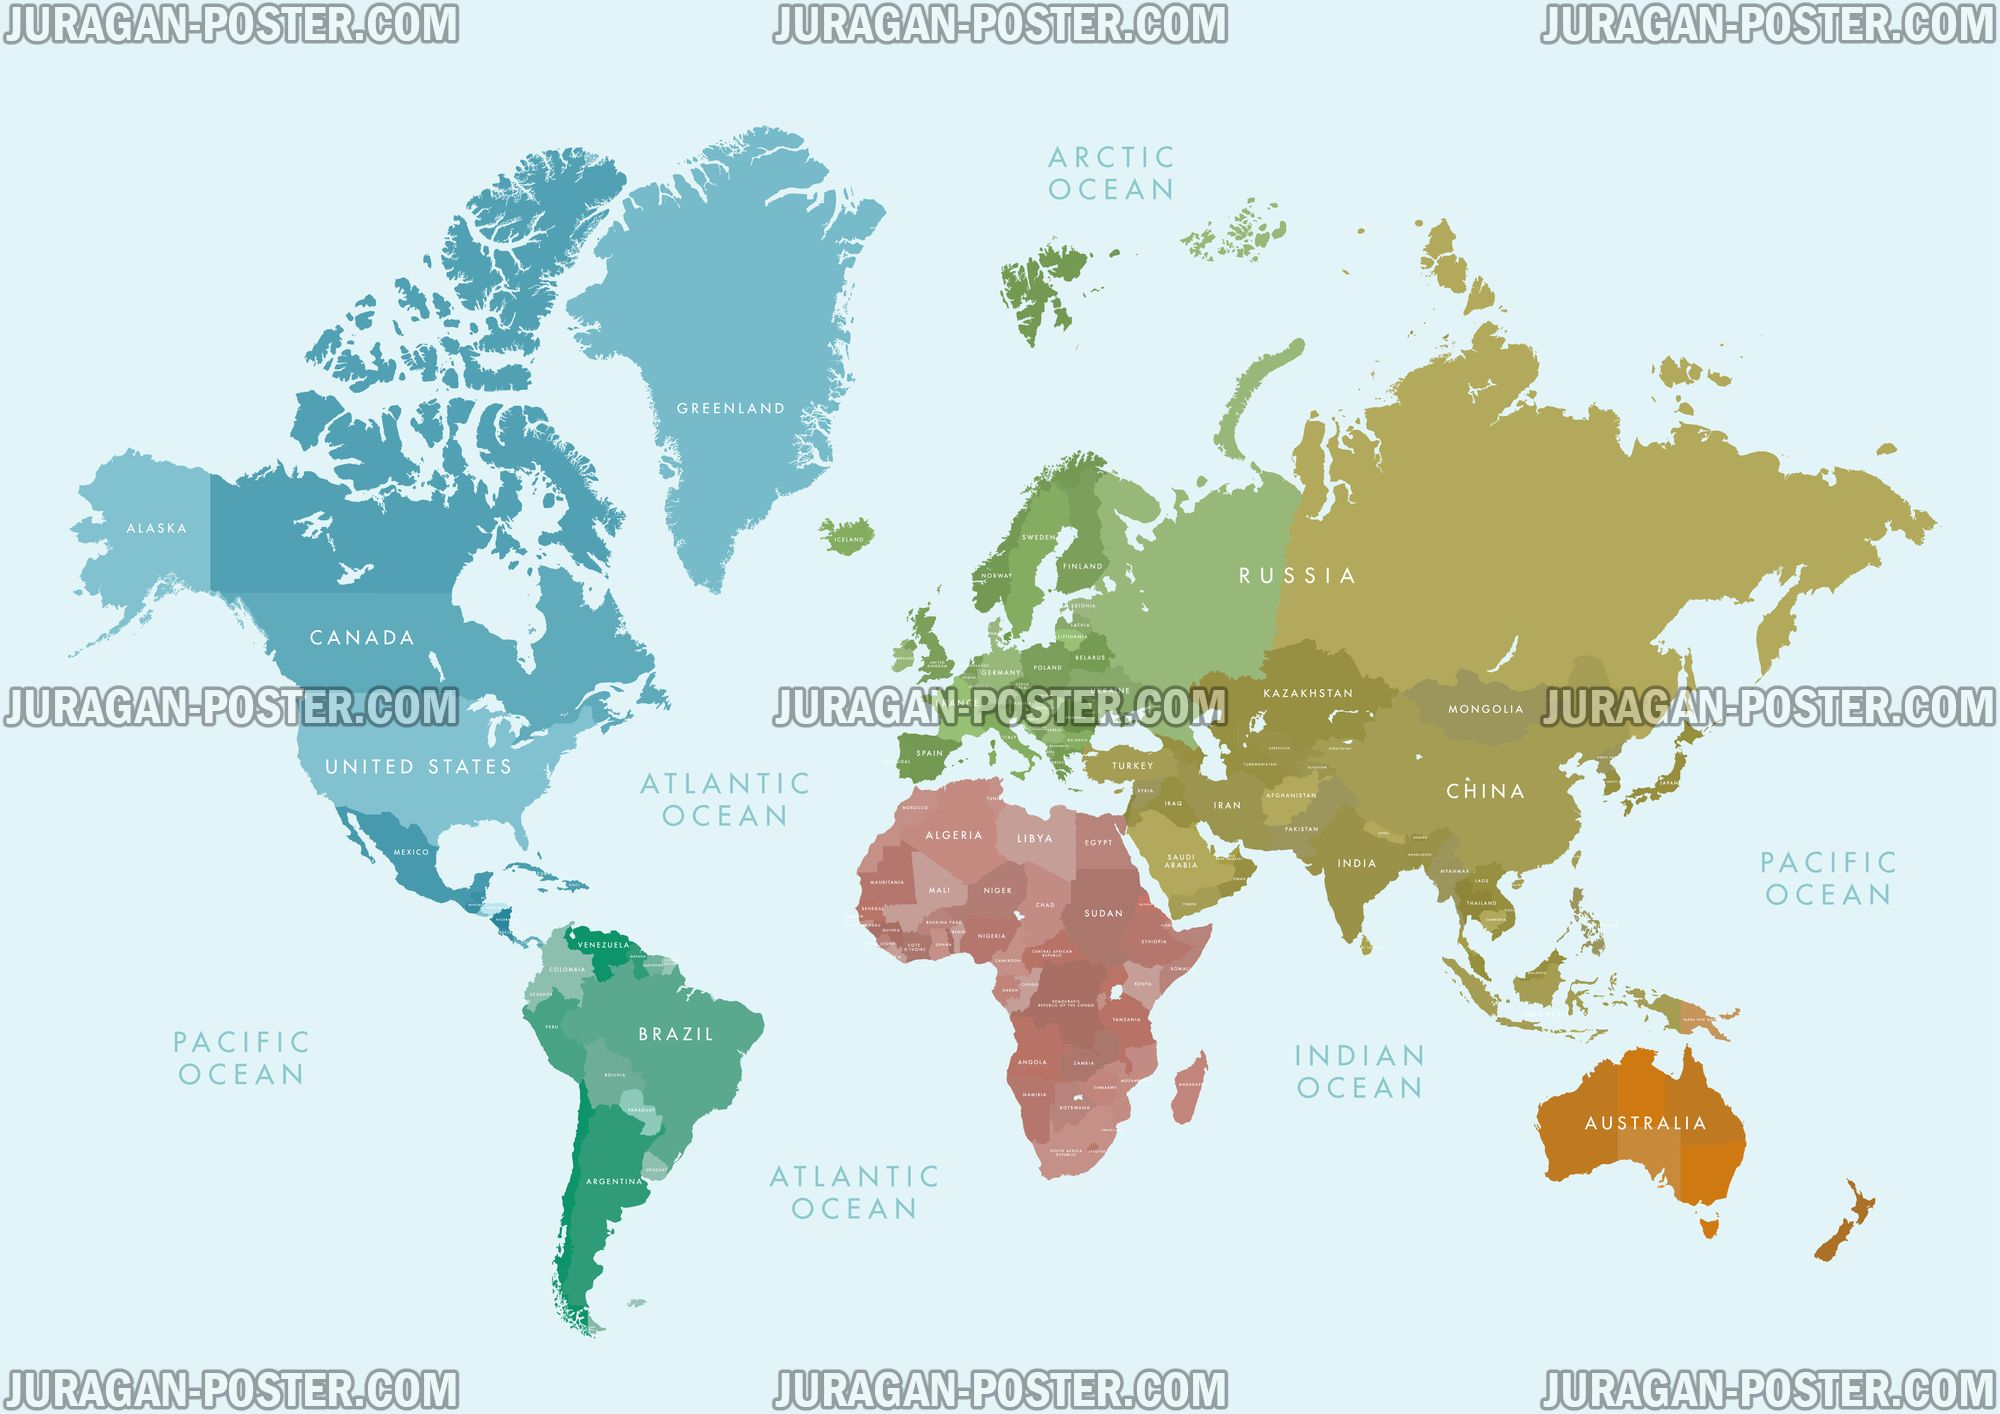 World Map Peta Dunia Jual Poster Juragan Maps 027 120x170cm